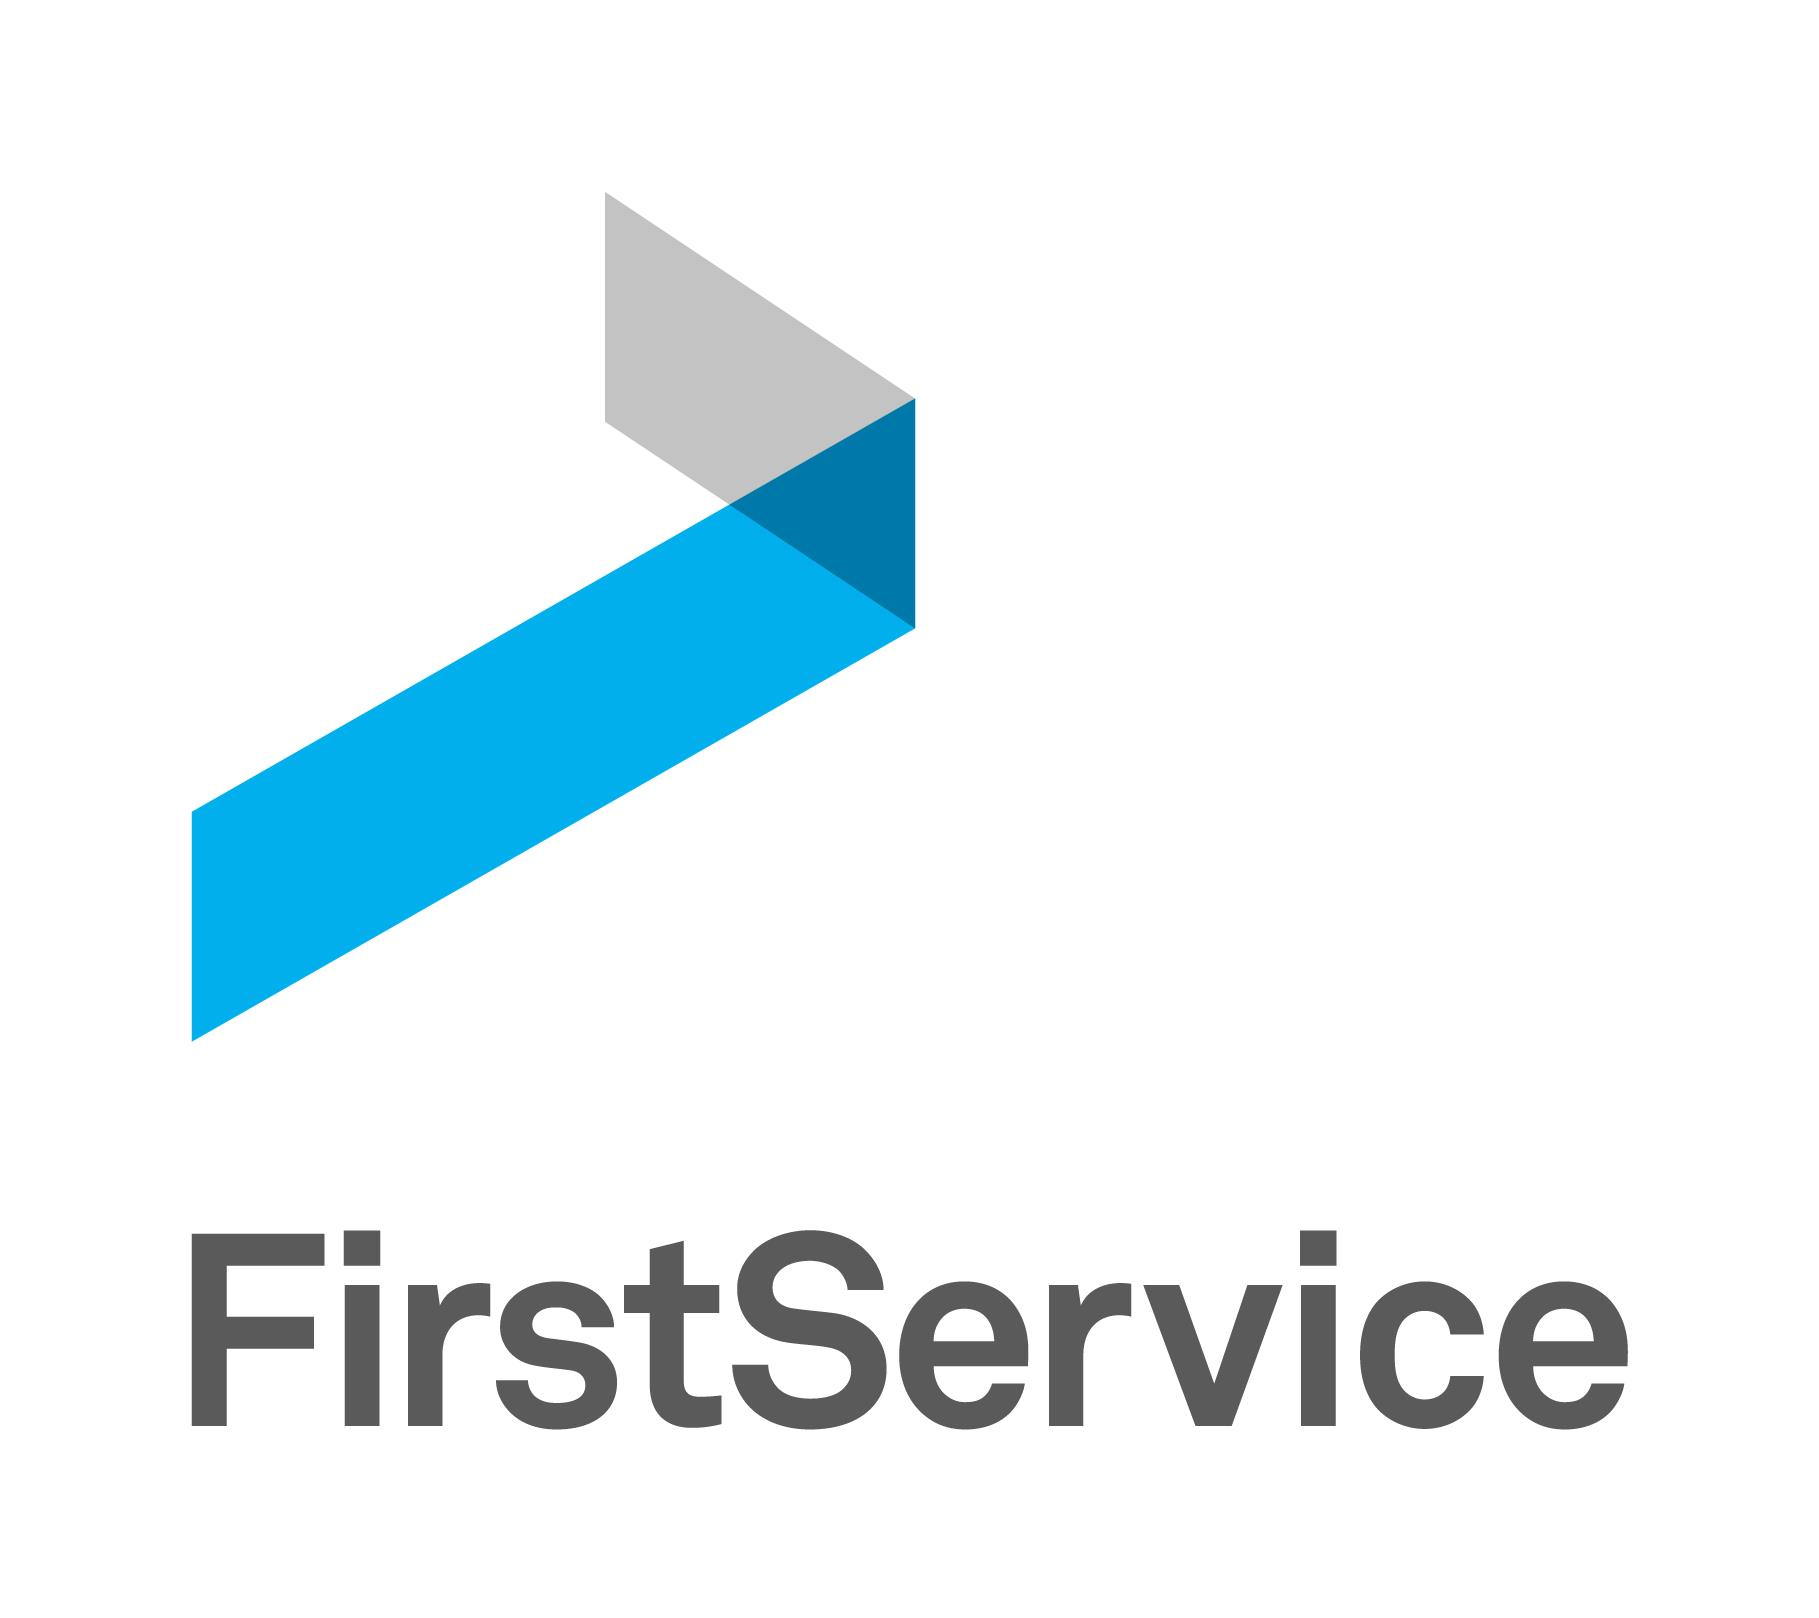 FIRSTSERVICE ANNOUNCES INFORMATION REGARDING UPCOMING SHAREHOLDERS' MEETING